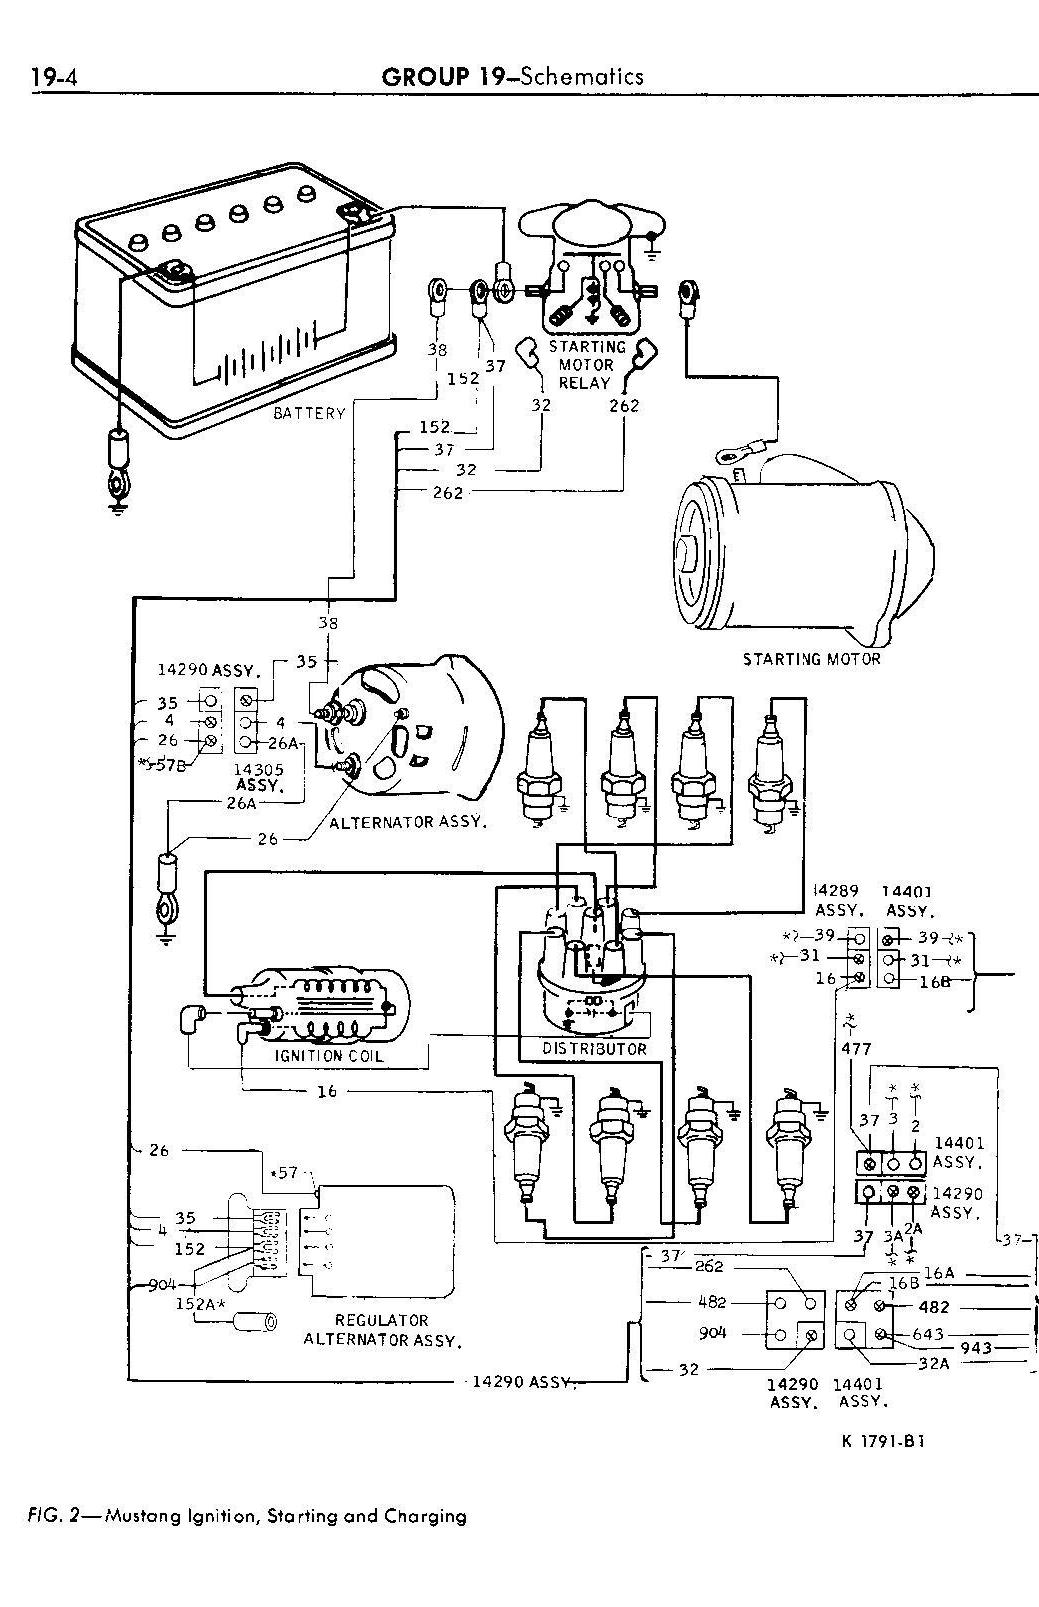 C4 Transmission Wiring Diagram on mustang coolant temperature sensor